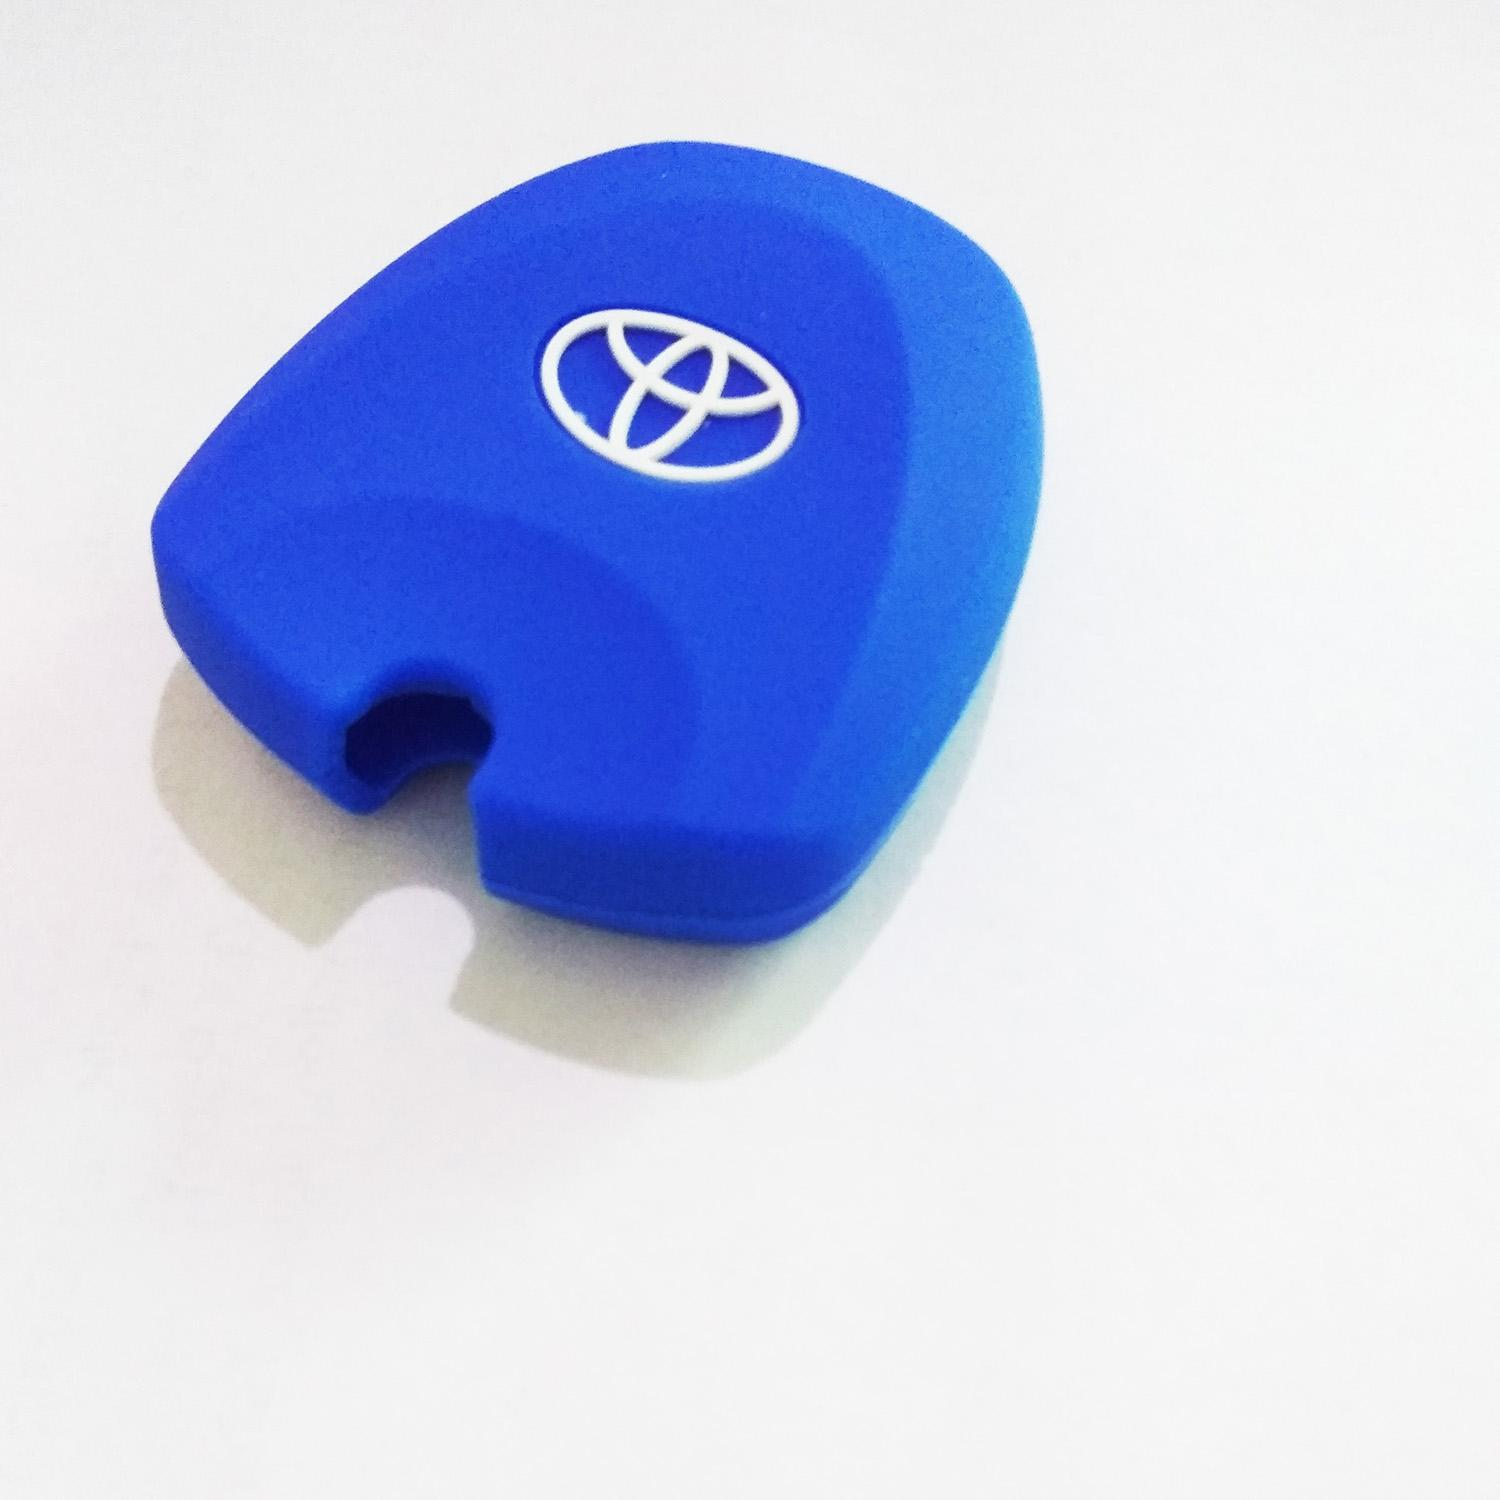 Toyota Philippines Price List Car Parts Accessories For Fj Cruiser Timing Belt Silicone Key Cover Wigo 2015 2018